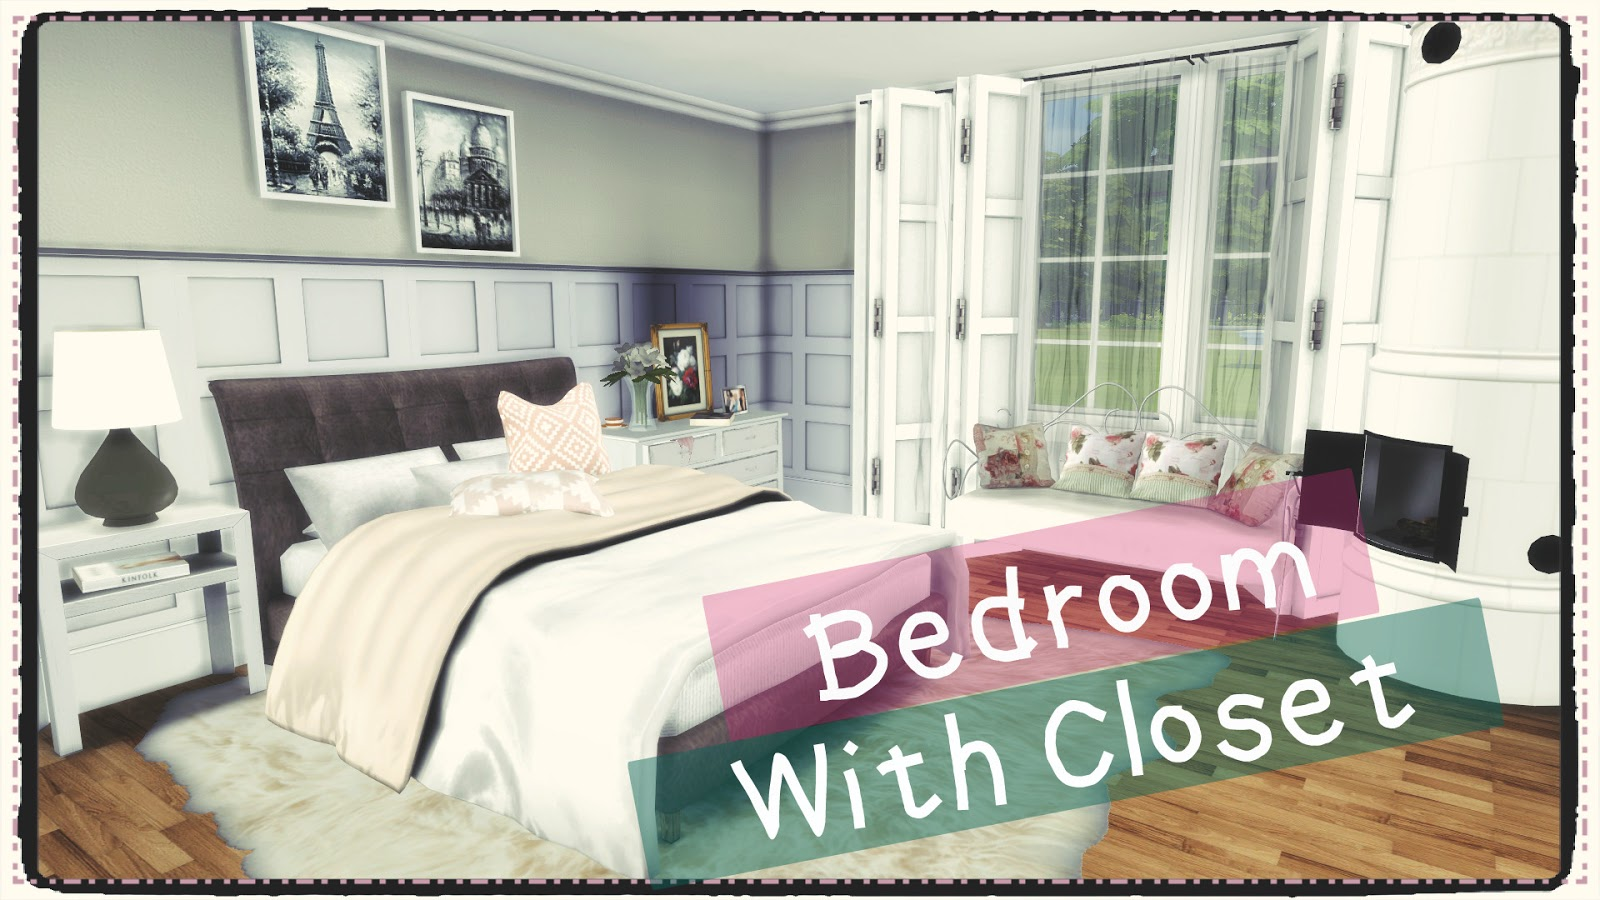 Bedroom With Closet (Build & Decoration)